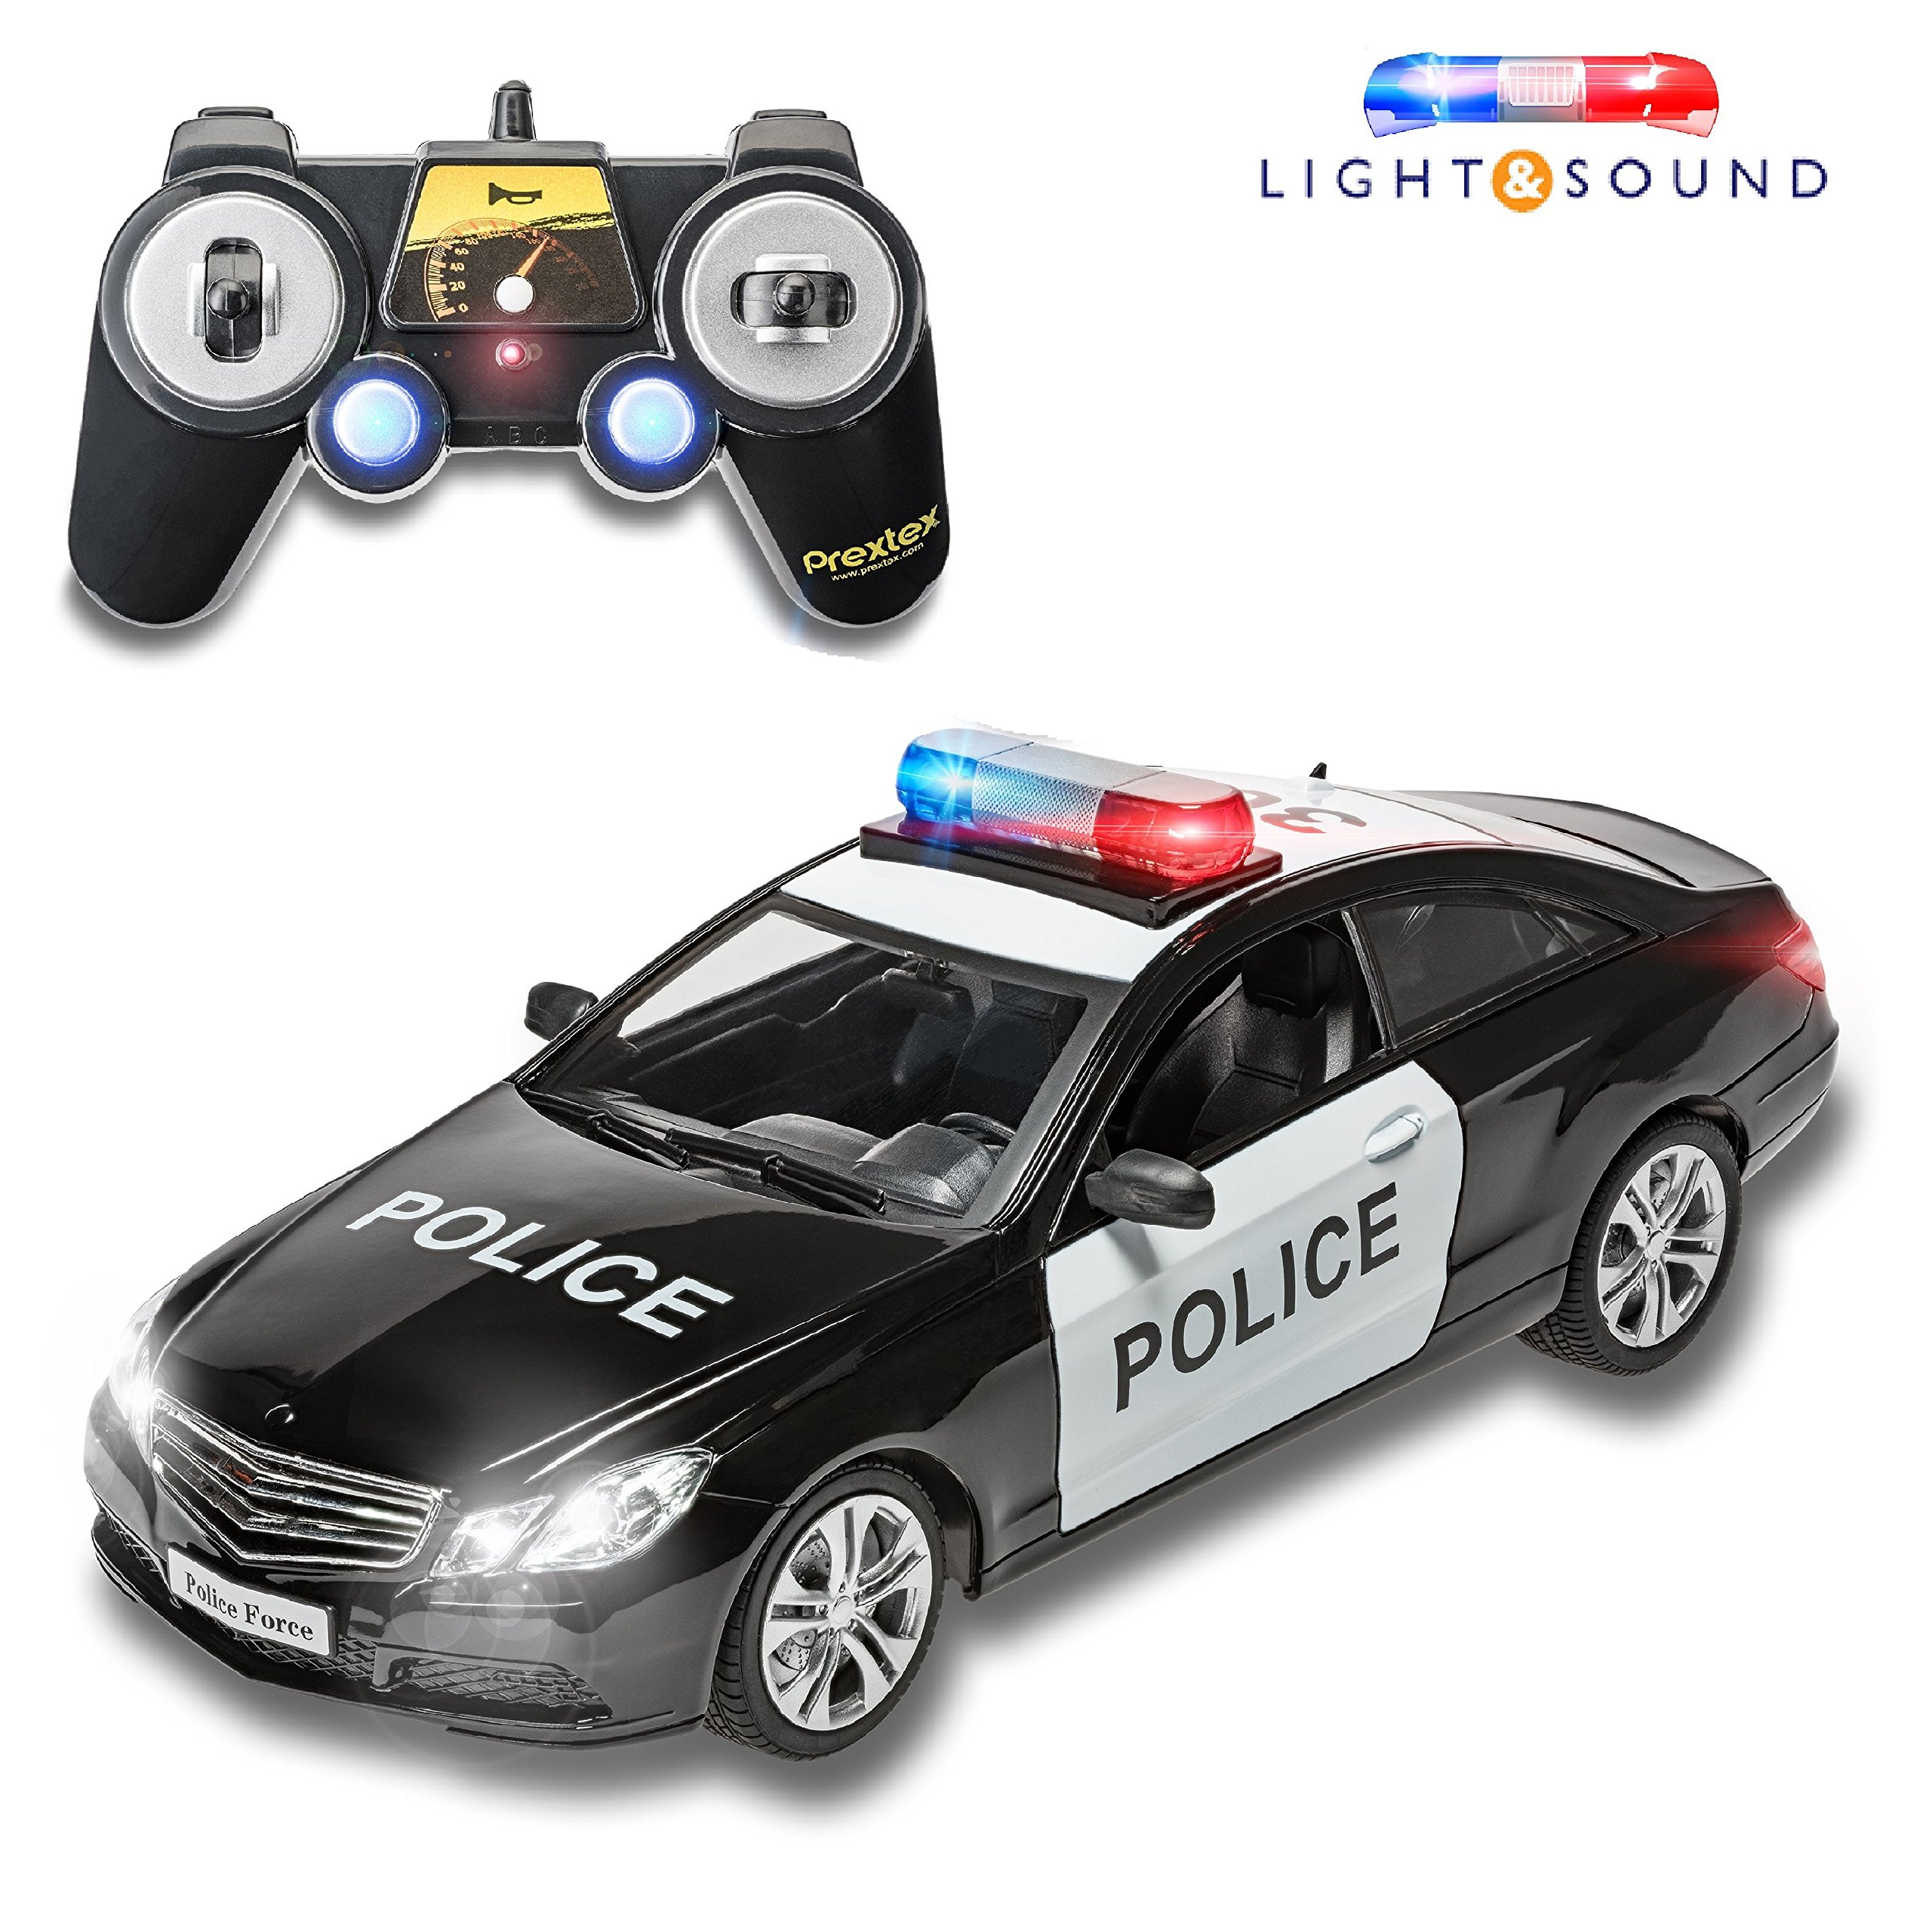 Prextex RC Police Car Remote Control Police Car RC Toys Radio Control Police Car Great toys for boys Rc Car with Lights And Siren for 5 year old boys And Up